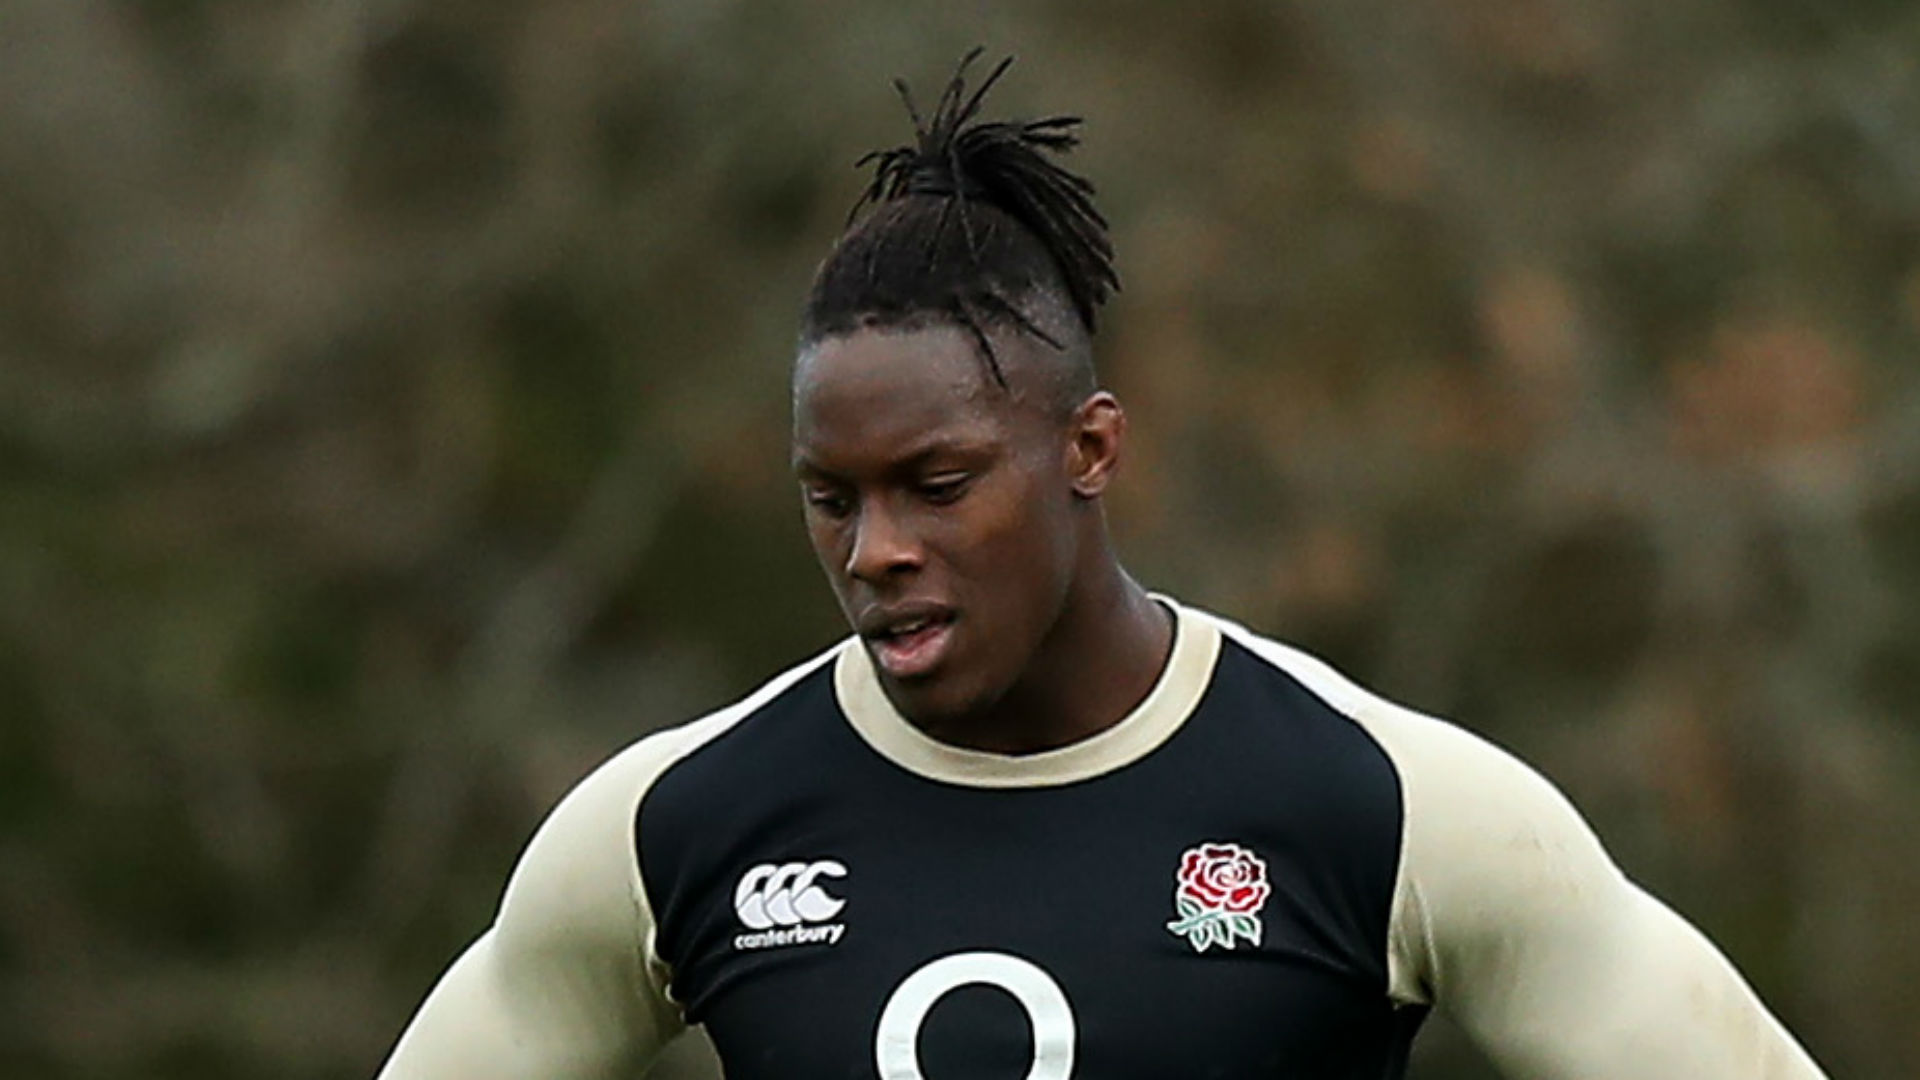 England's Itoje suffers injury ahead of Italy match